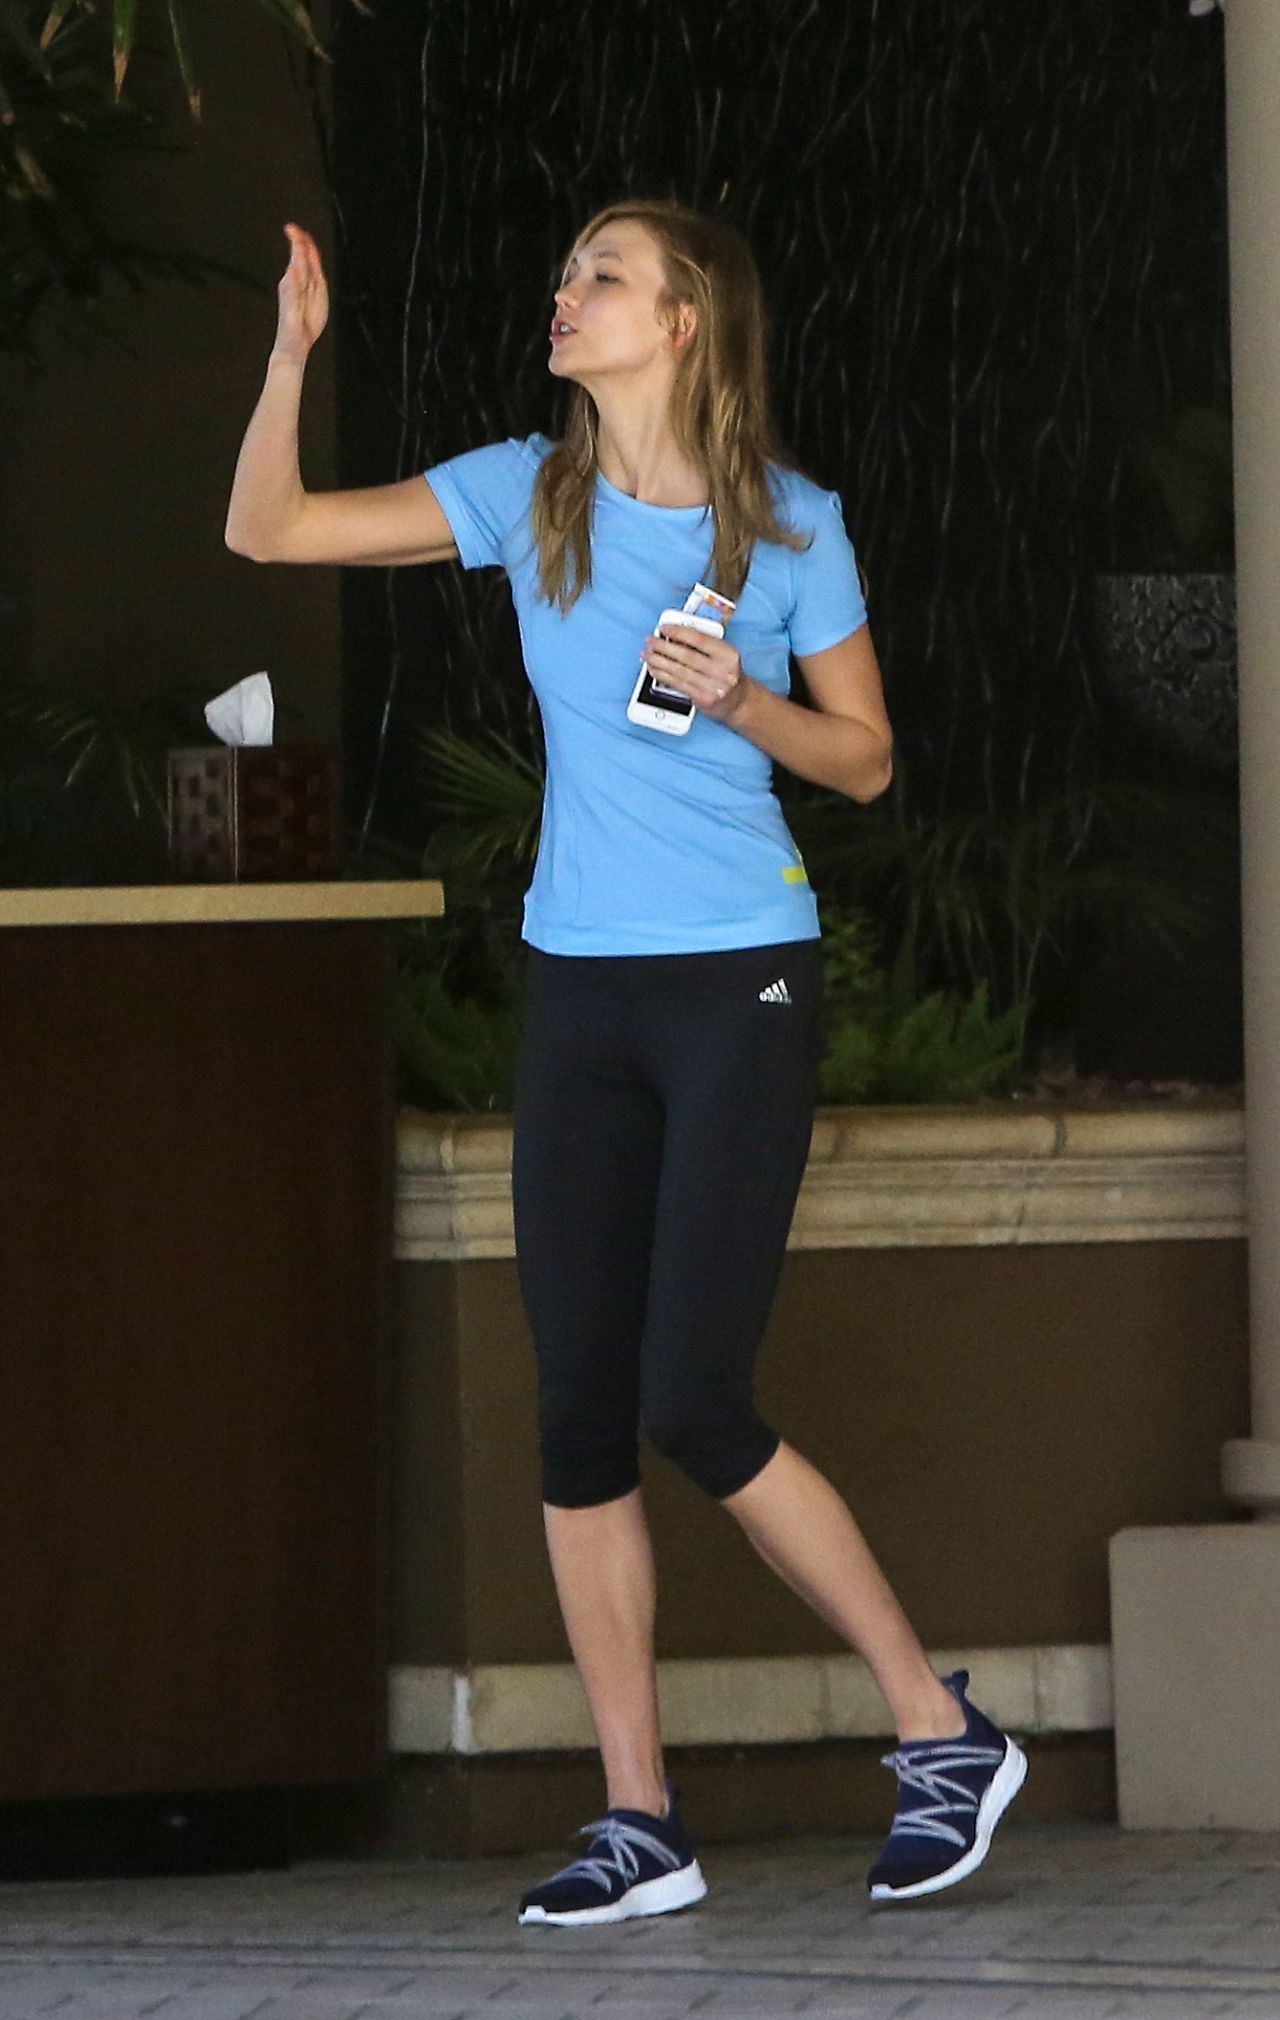 Karlie Kloss And Taylor Swift At The Gym In Beverly Hills